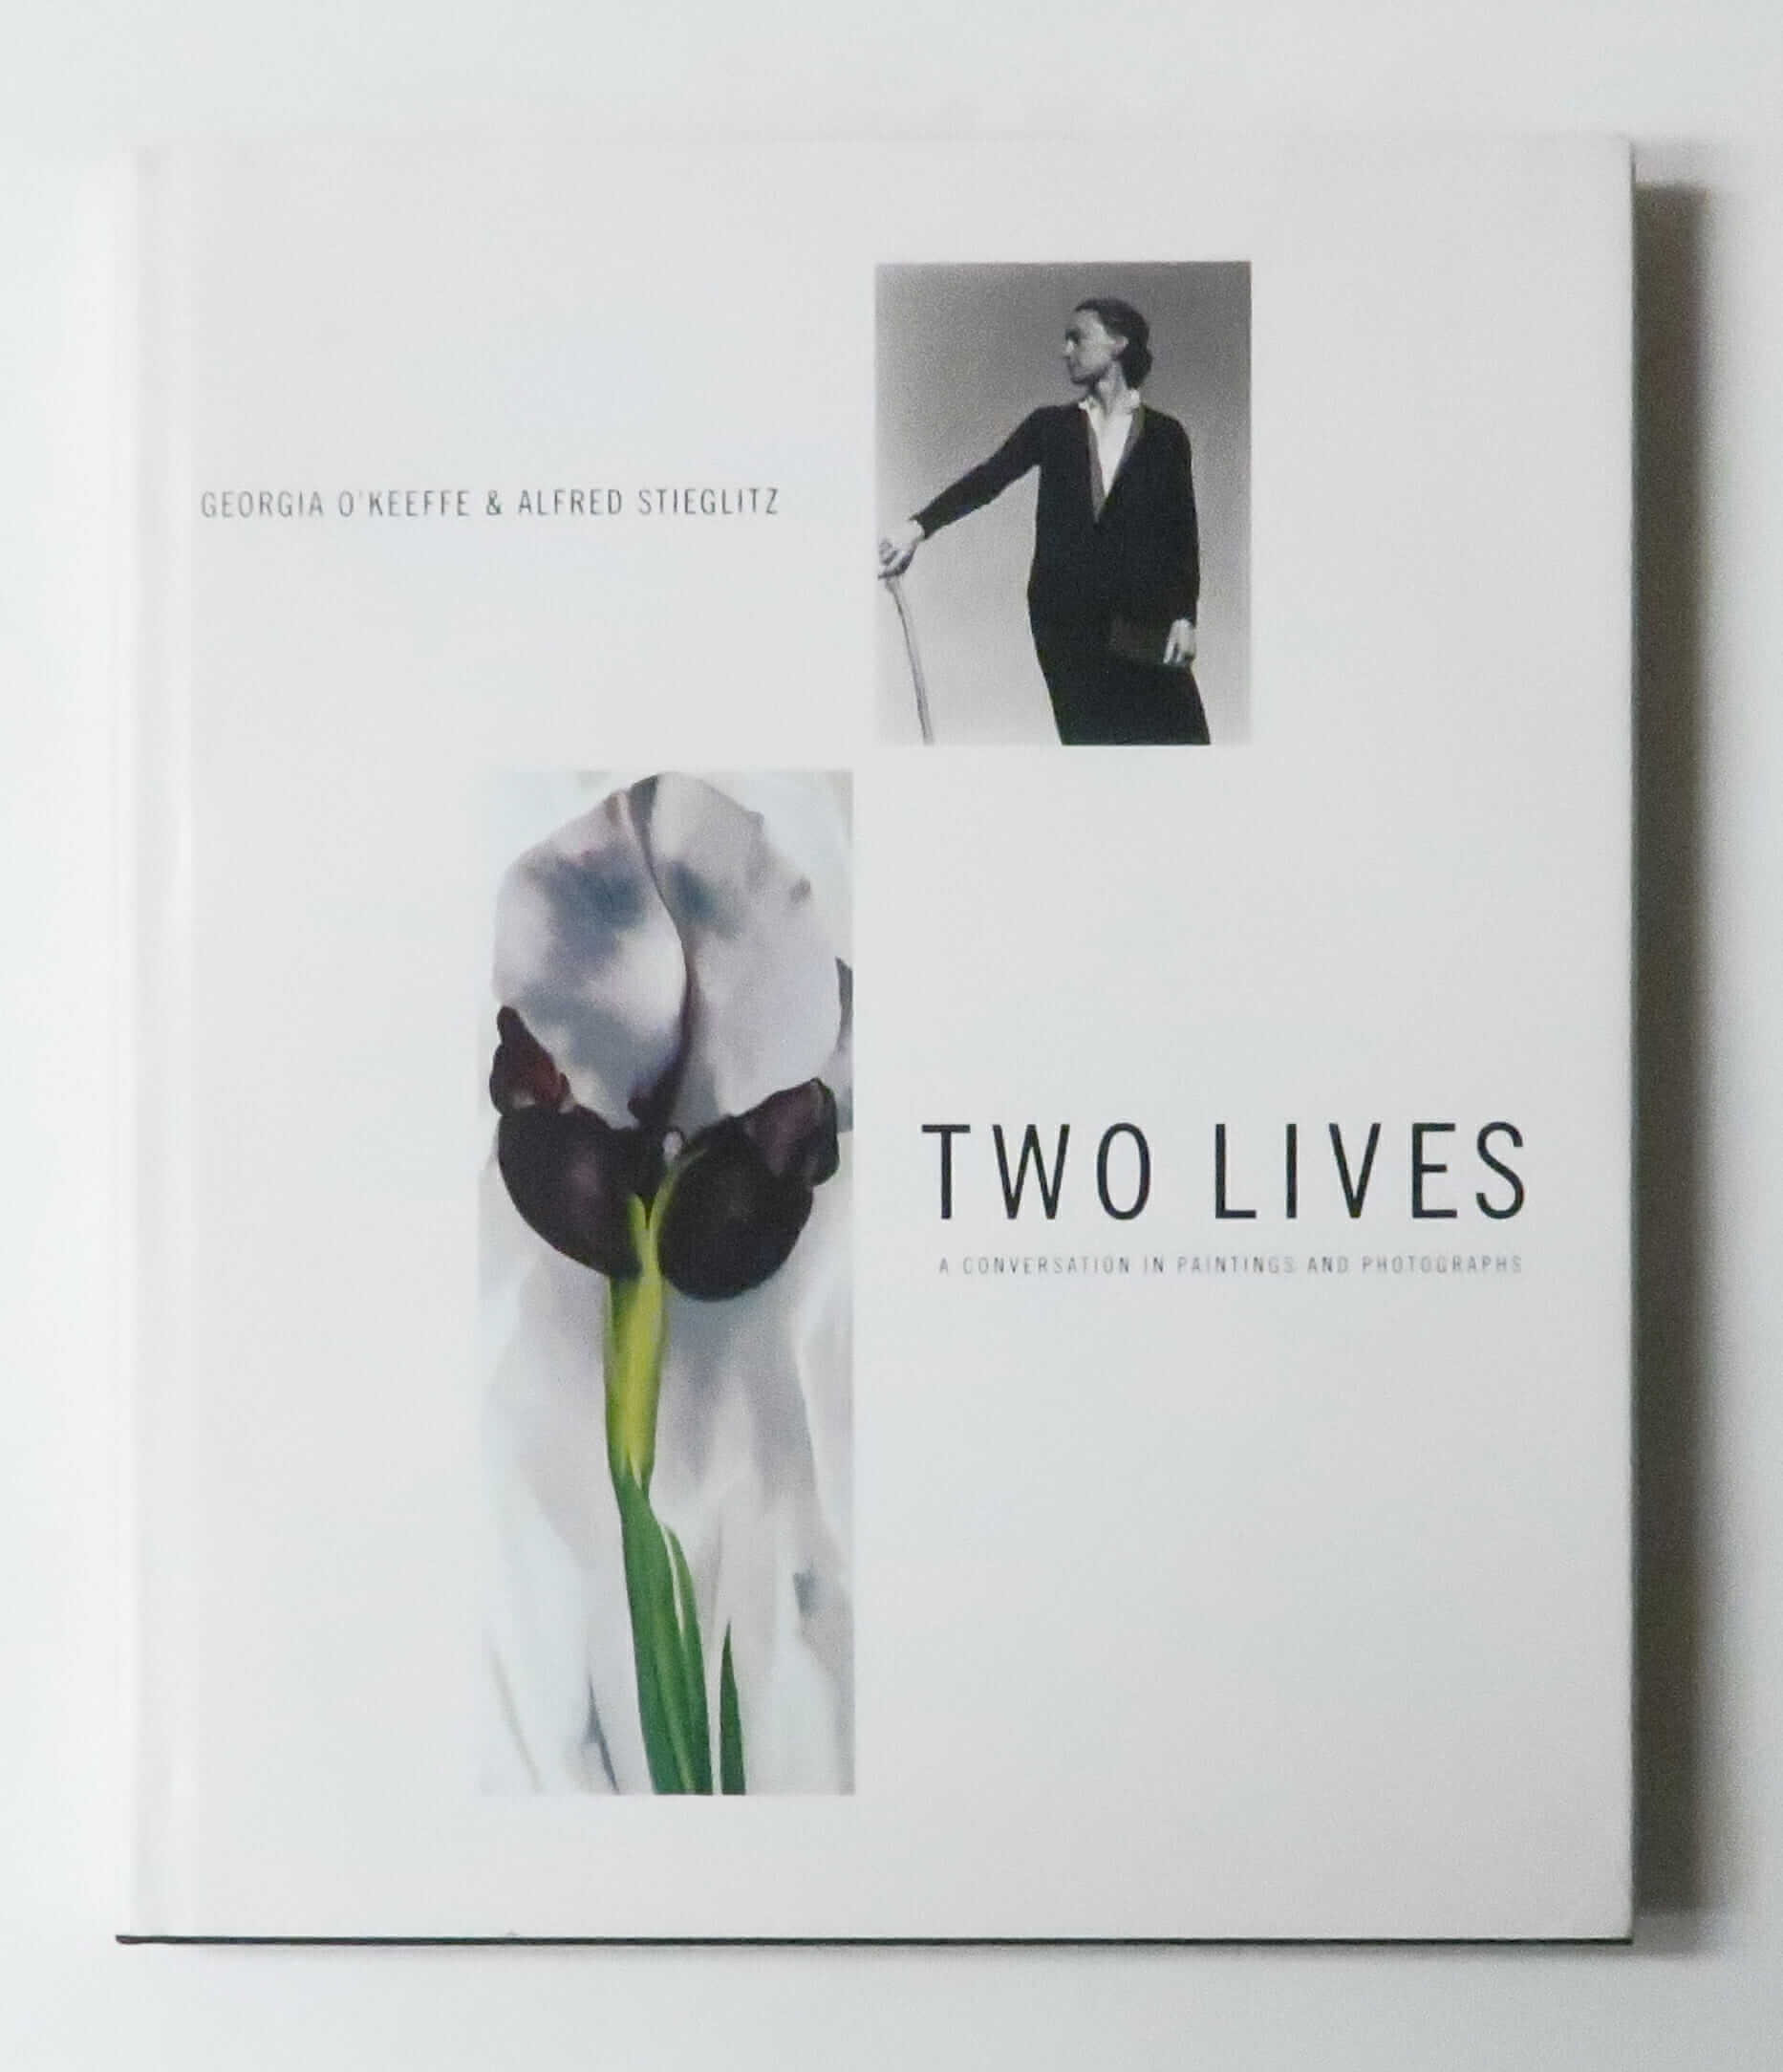 Two Lives: A Conversation in Paintings and Photographs | Georgia O'Keeffe and Alfred Stieglitz